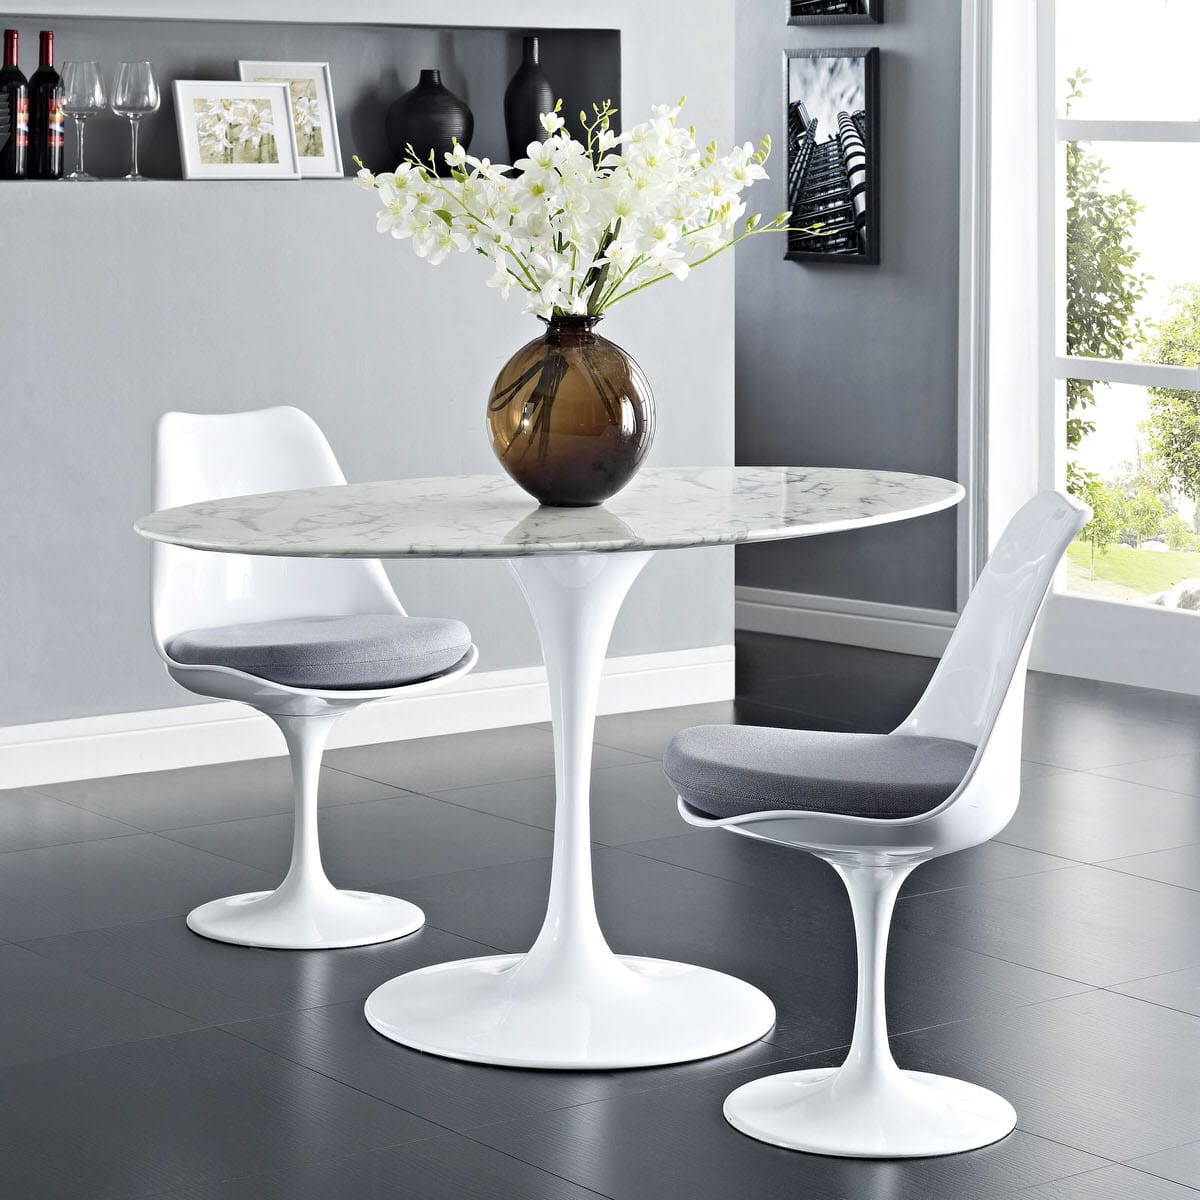 Lippa 54 Inch Oval Artificial Marble Dining Table White By Modern Living